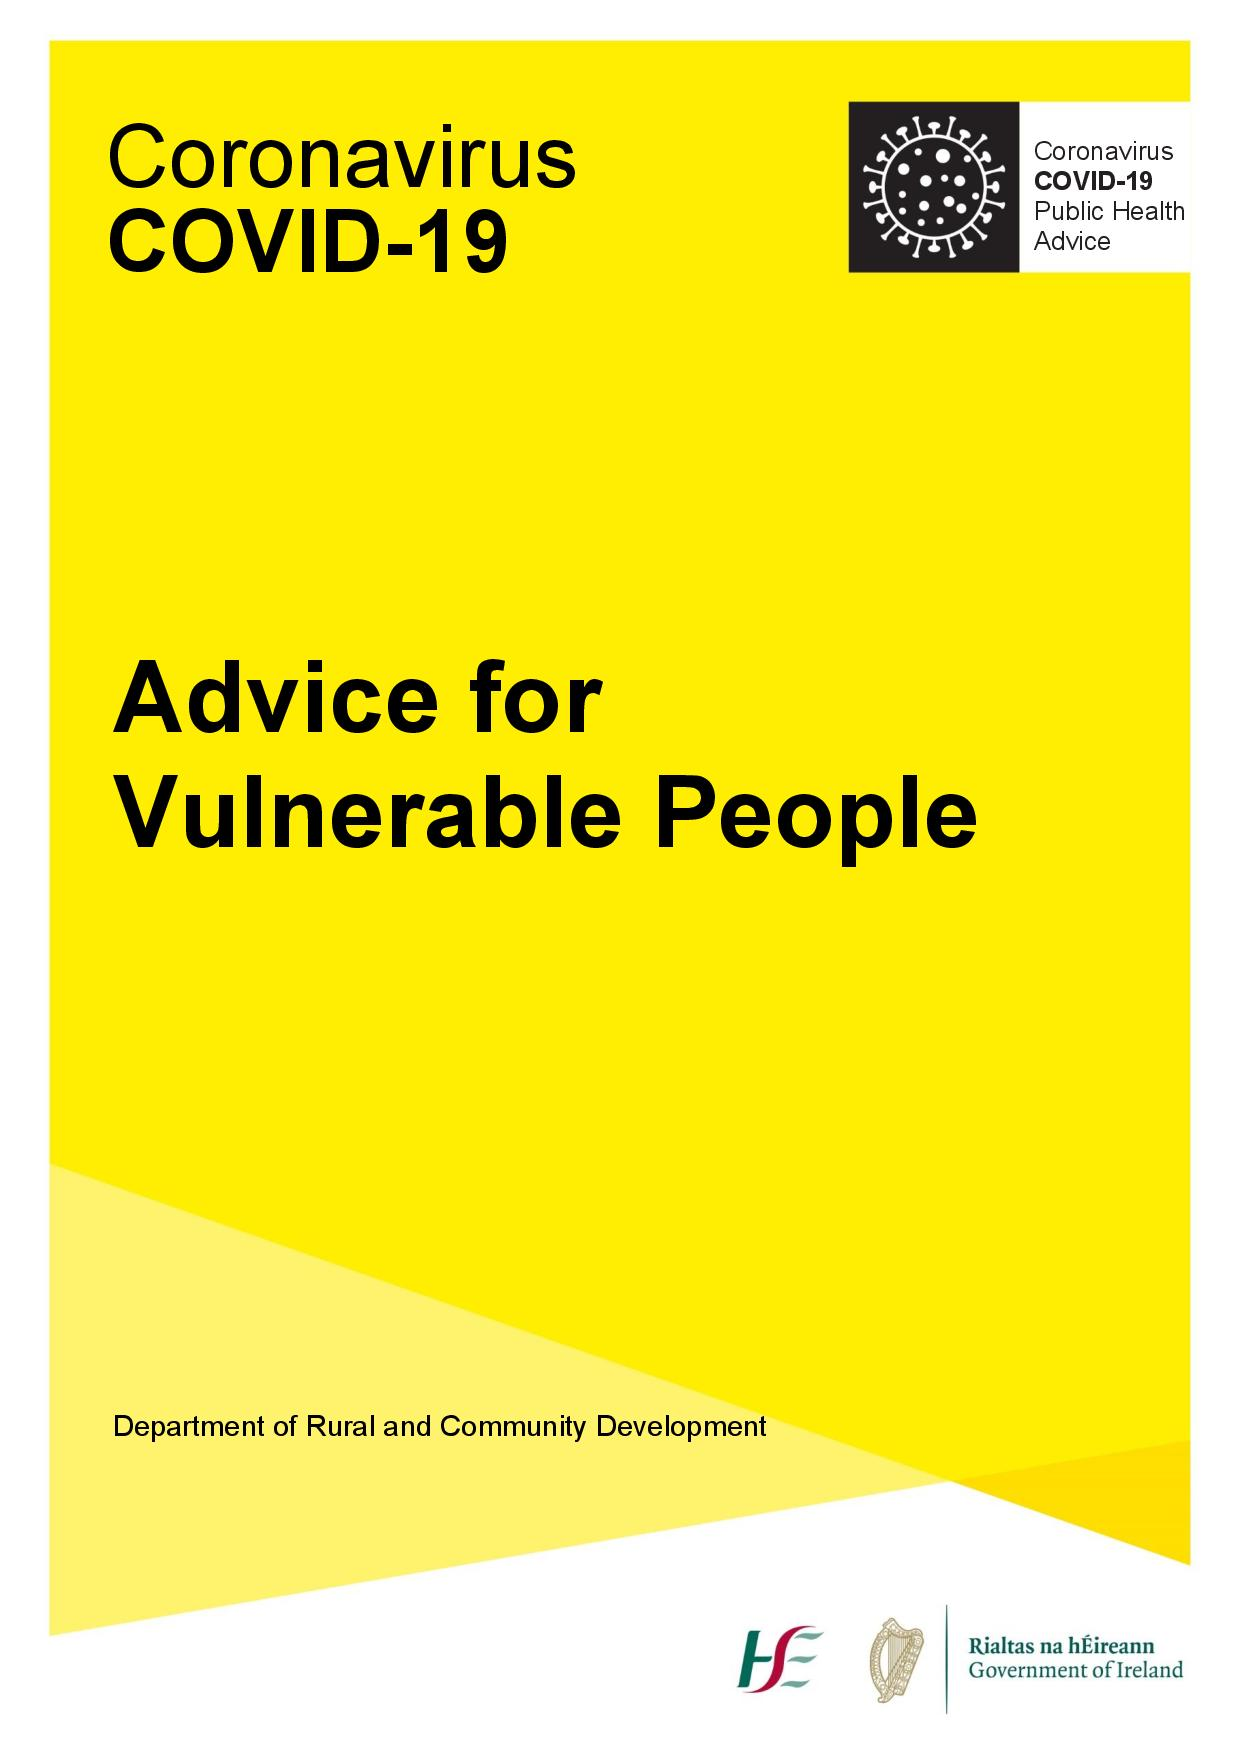 AdviceForVulnerablePeople-page-001